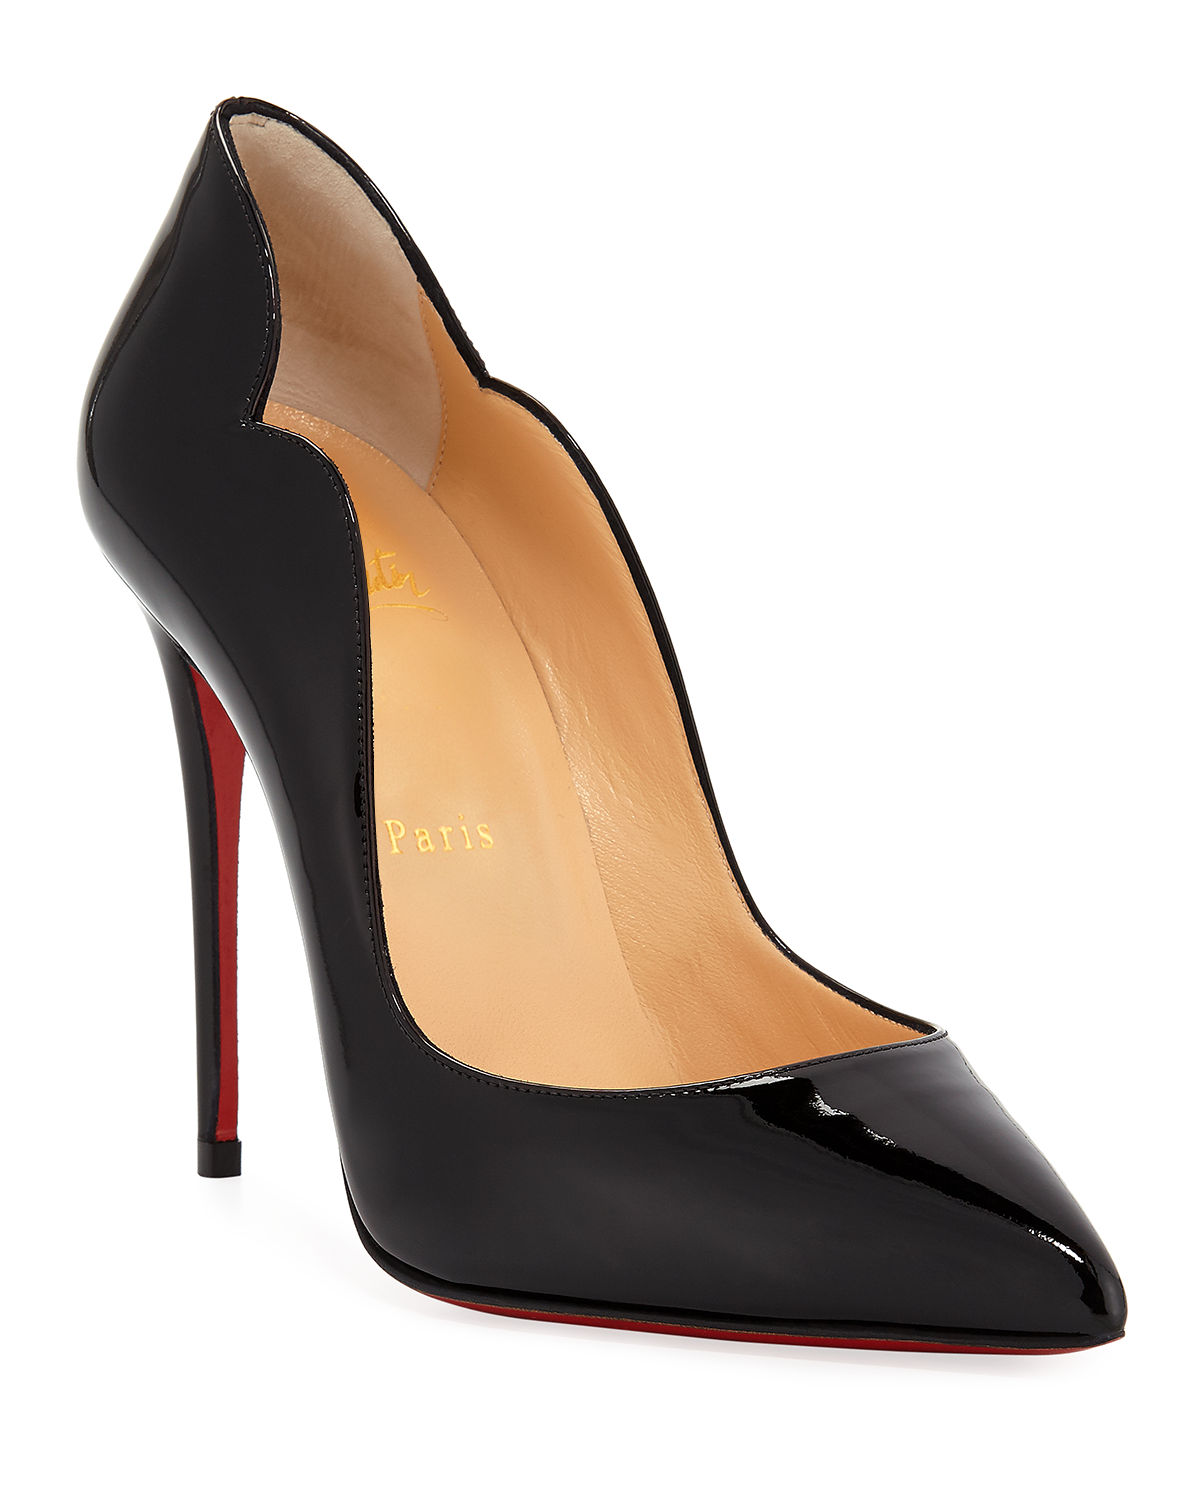 0d06946cf1d2 Christian Louboutin Hot Chick 100 Patent Red Sole Pumps